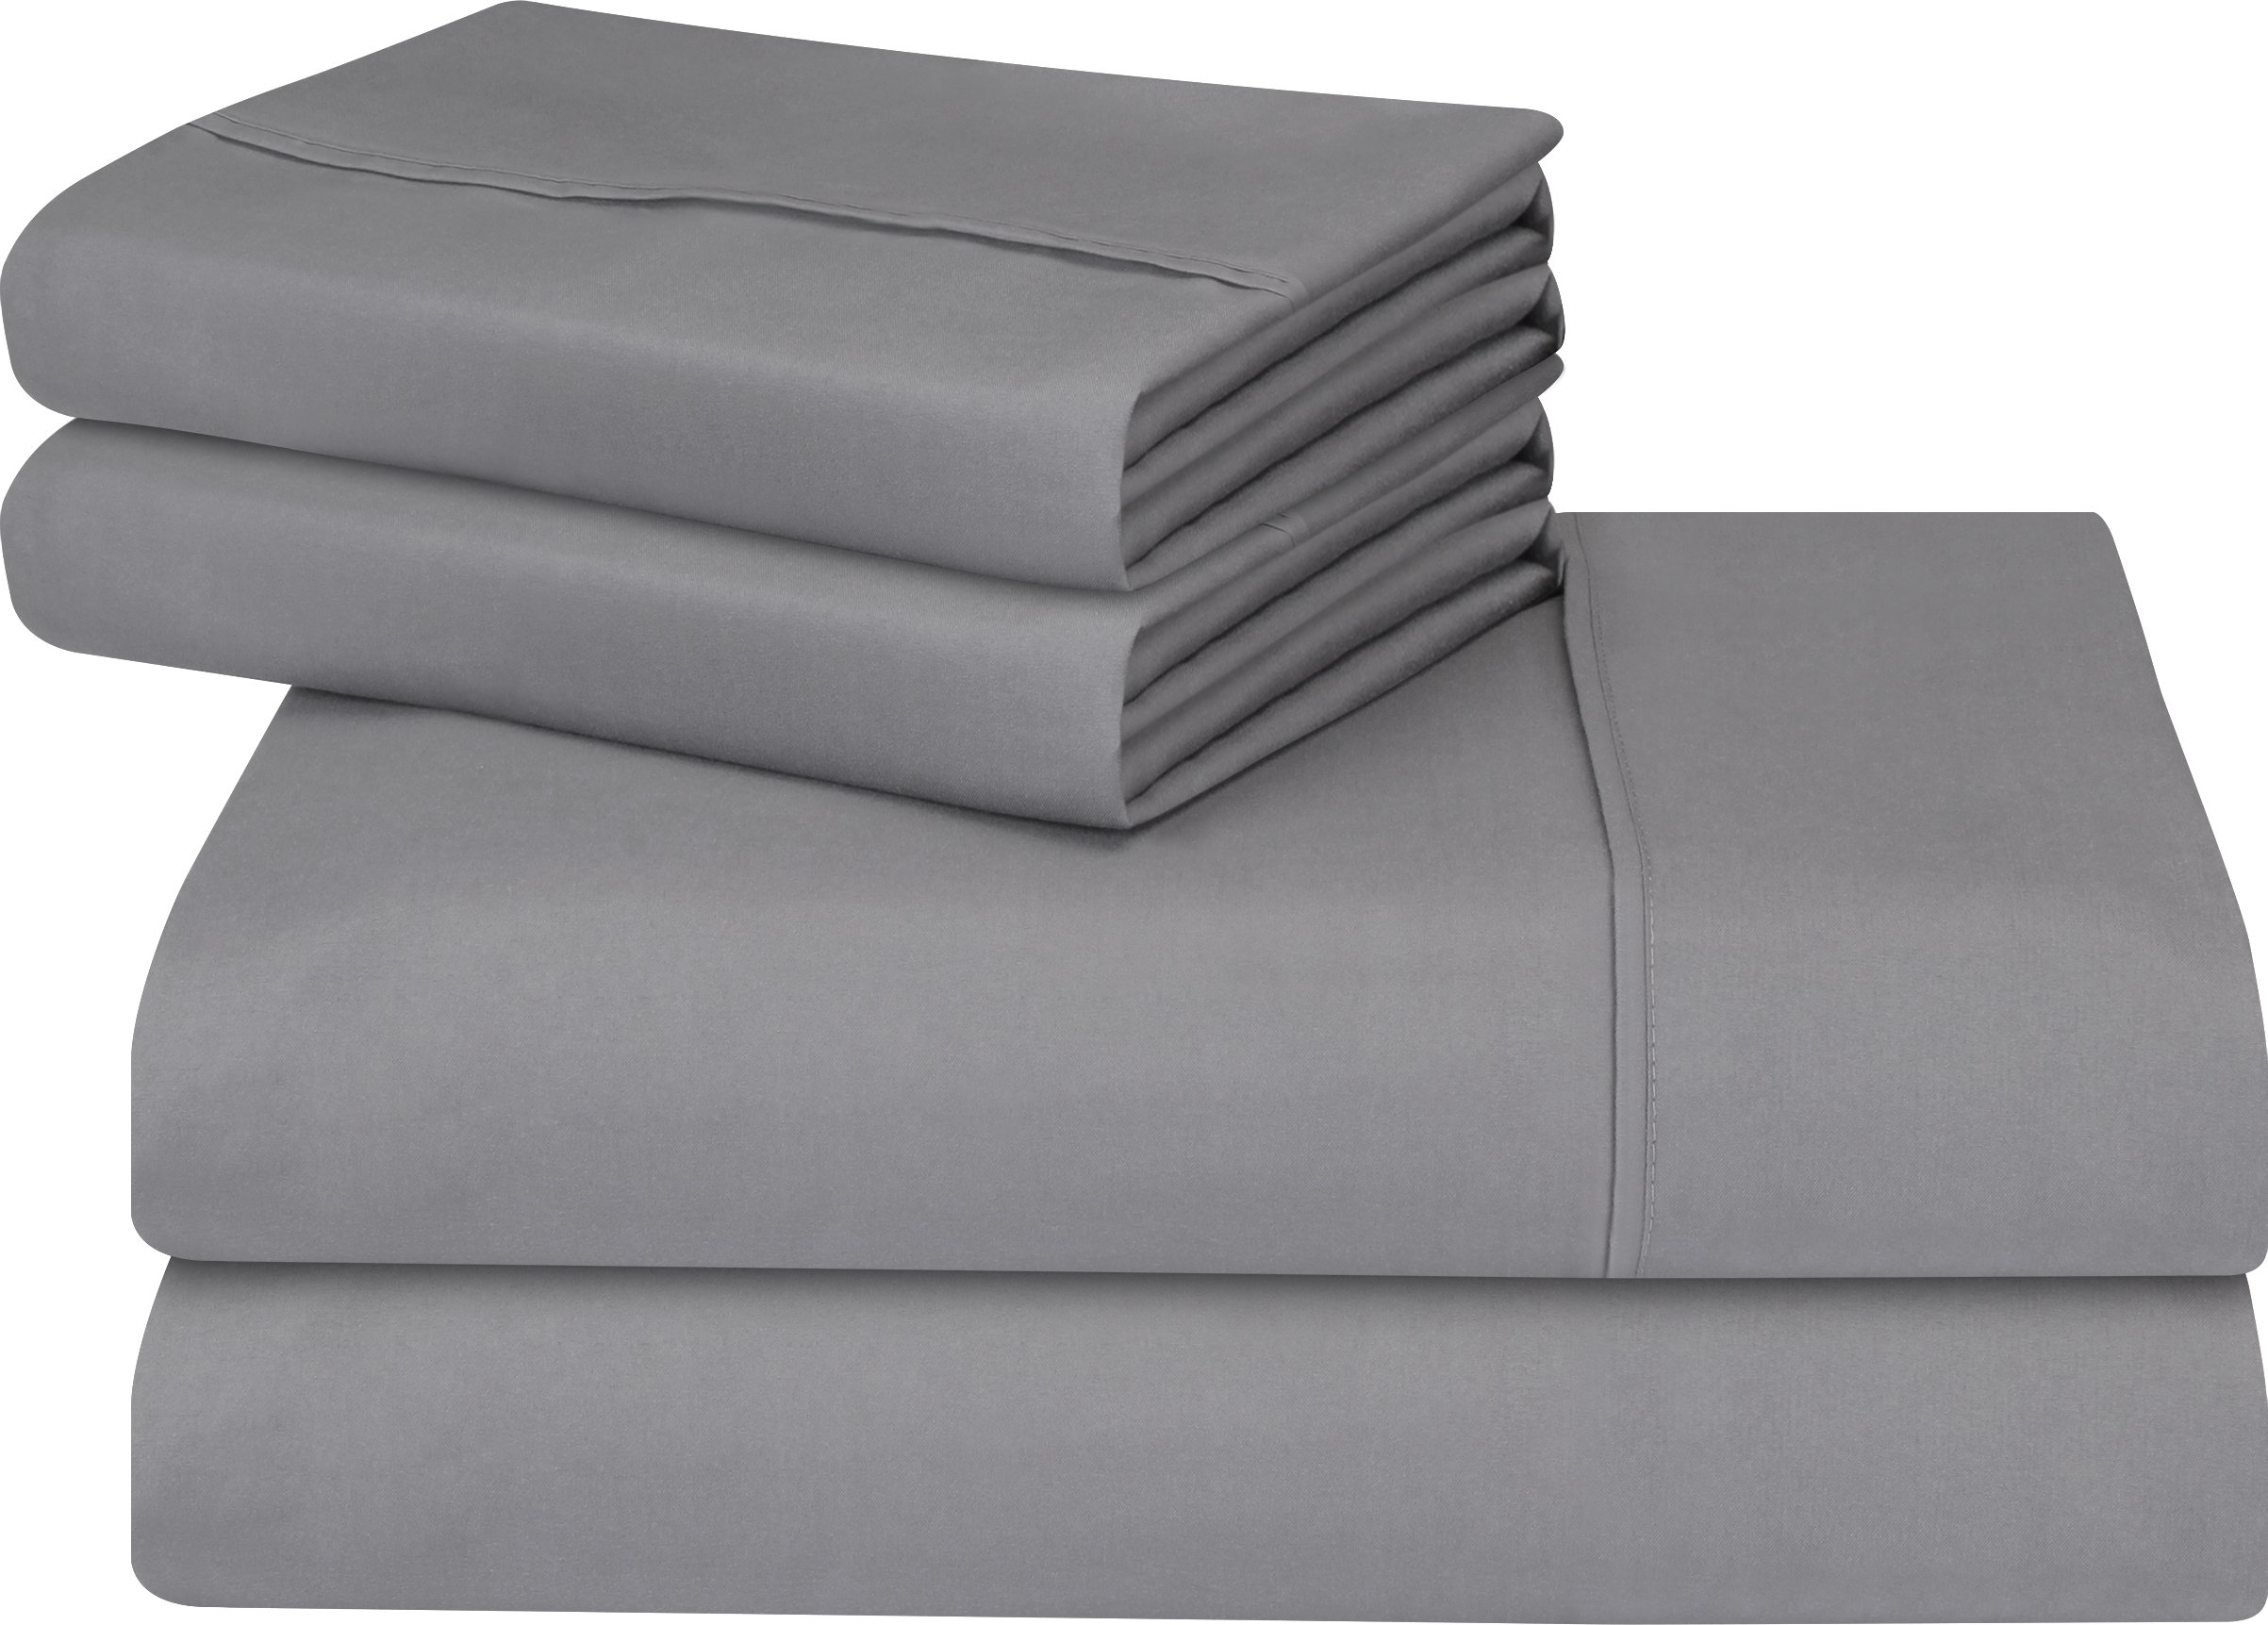 Premium 4 Piece Bed Sheet Set (Queen, Grey) 1 Flat Sheet 1 Fitted Sheet and 2 Pillow Cases - Brushed Velvety Microfiber - Luxurious and Extremely Durable